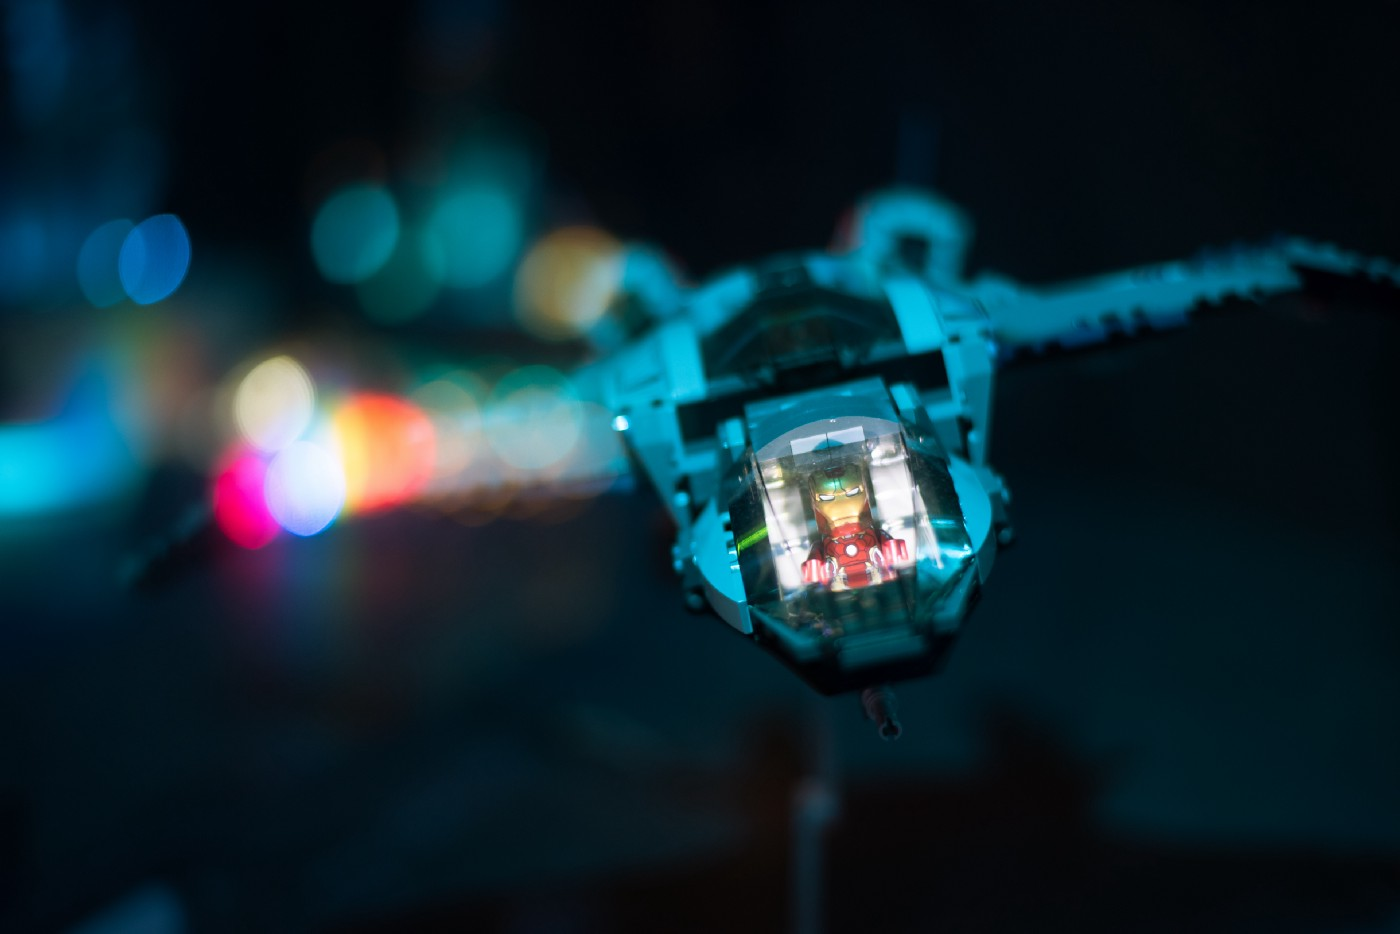 Starship from lego blocks picture